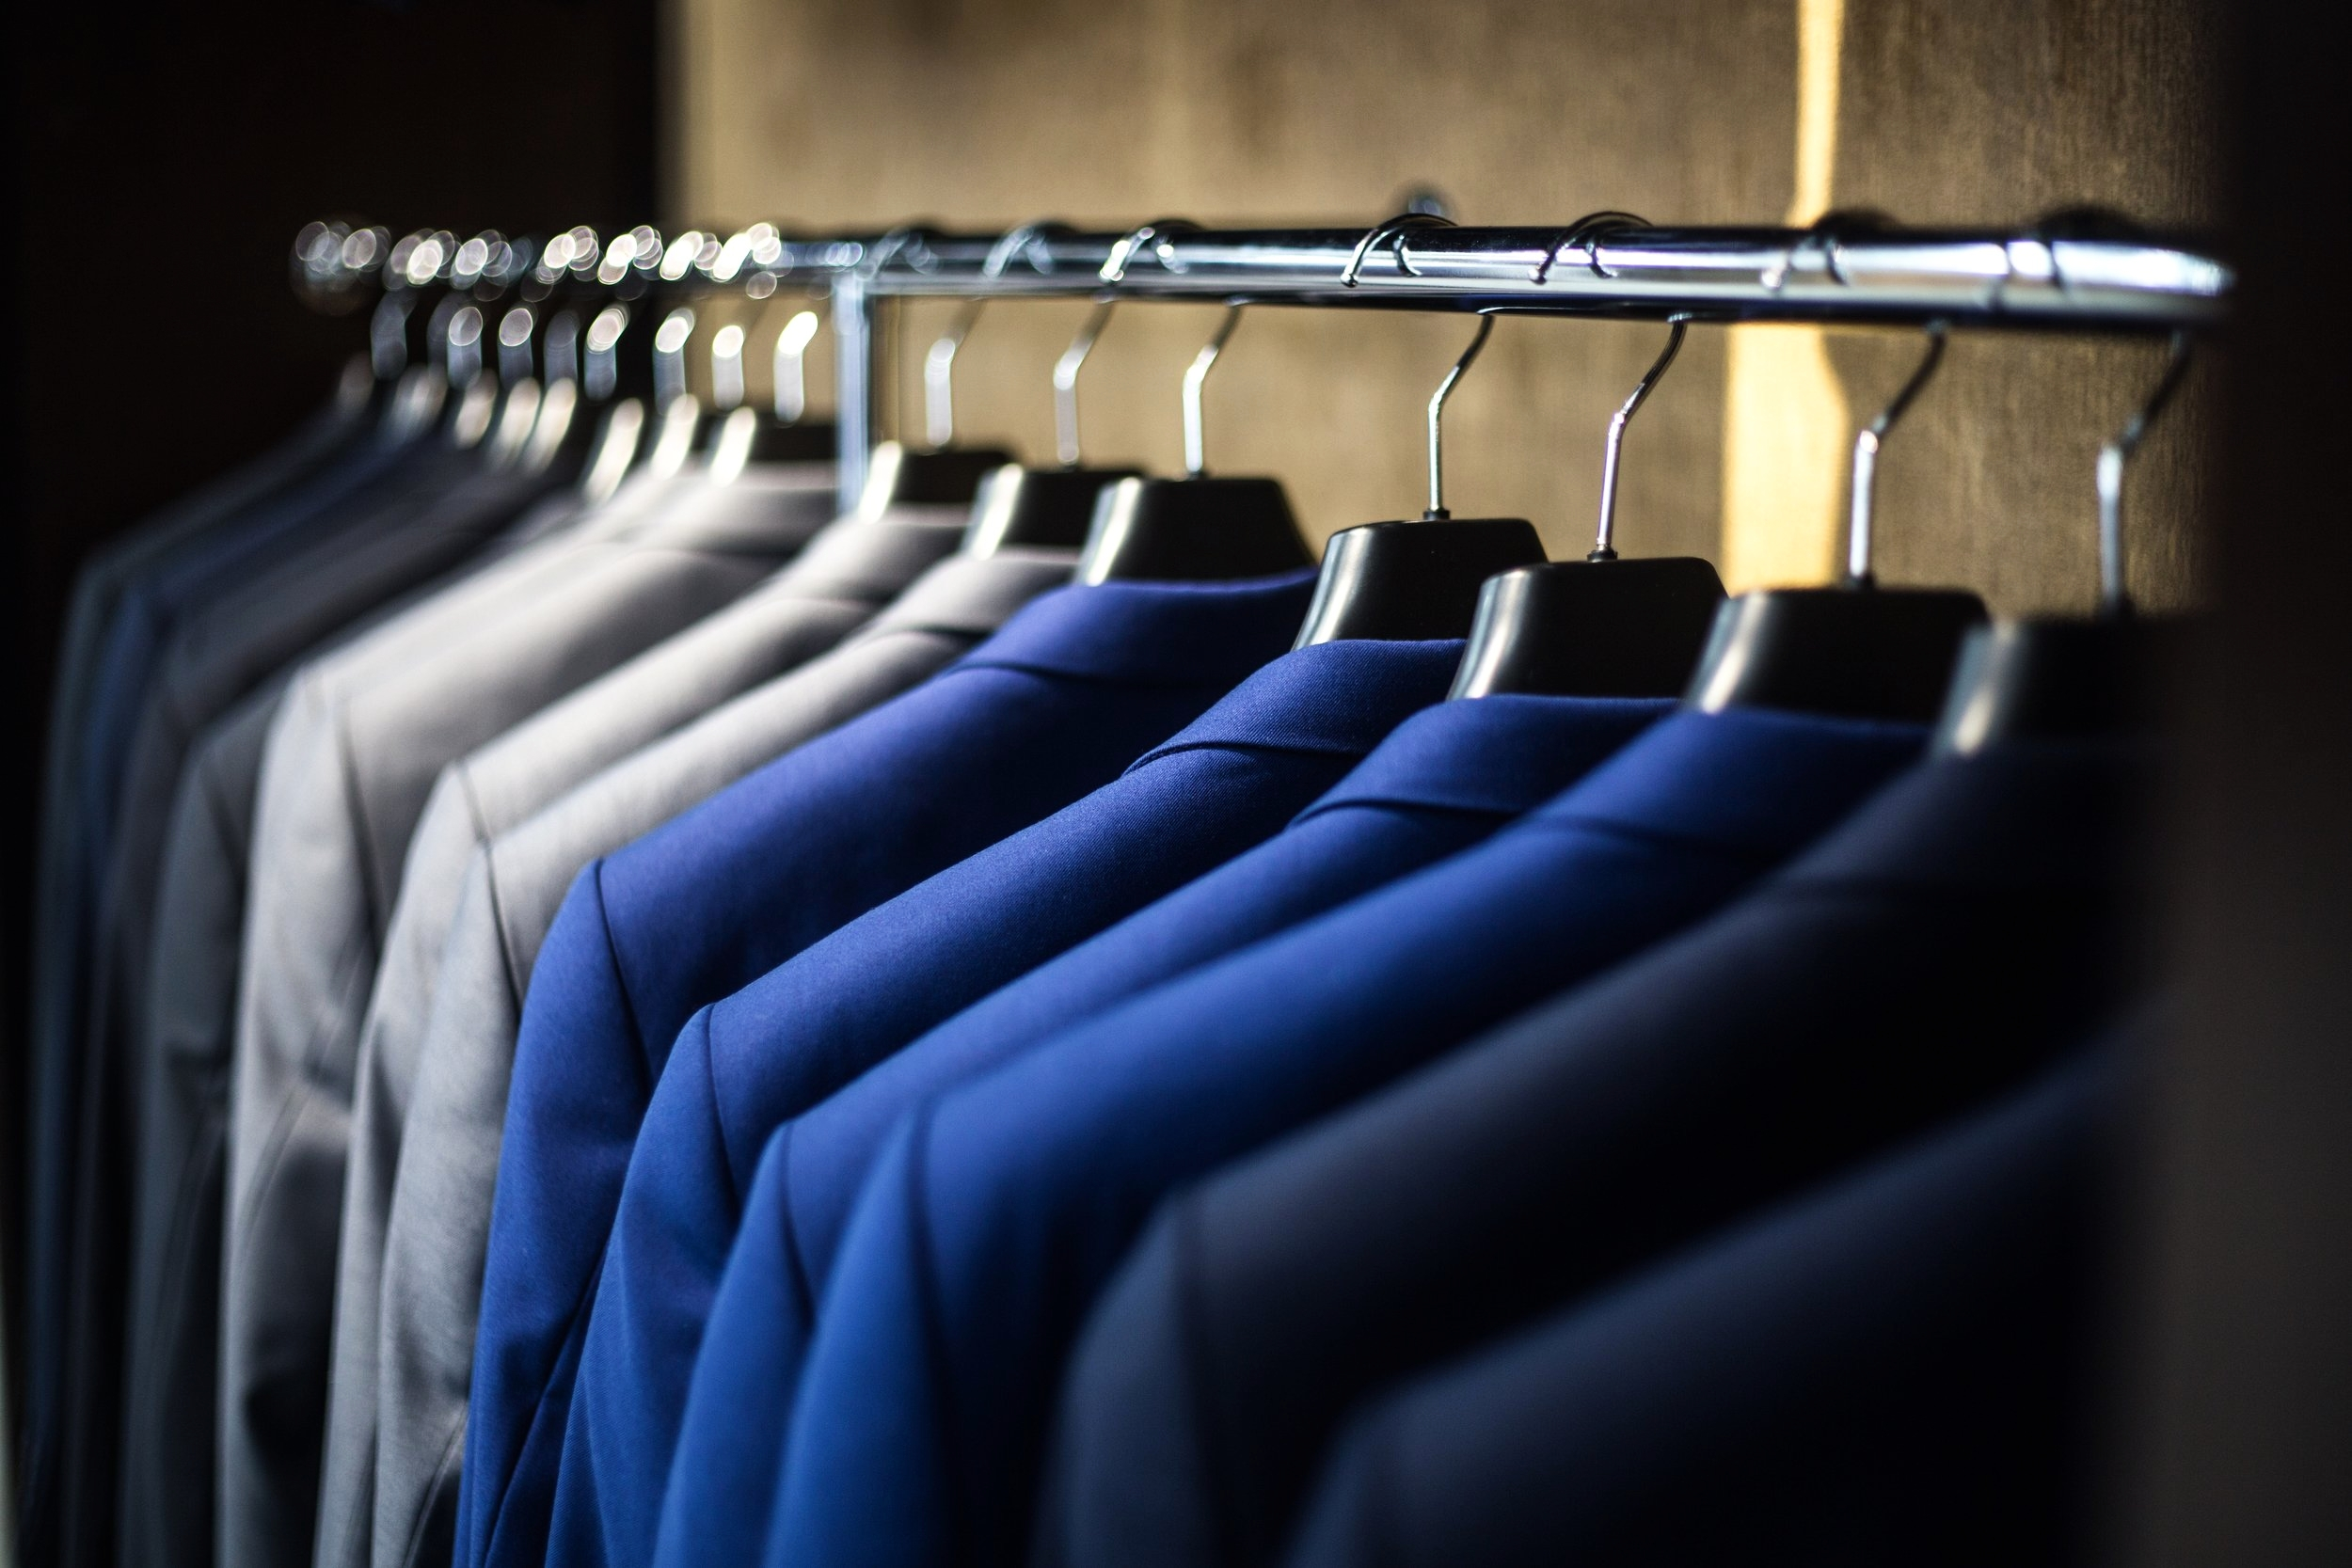 Let your GPS navigate you into the perfect suit or tuxedo. - Want to be fitted for a custom suit or tuxedo for your big day? We are also a full-service custom clothing company, creating beautiful looks for rehearsal dinners, weddings and honeymoons. Your GPS can help you from beginning to end, ensuring cohesion between yourself, the bride and your groomsmen.Start by talking about your vision, and let the GPS get you to your sartorial destination.